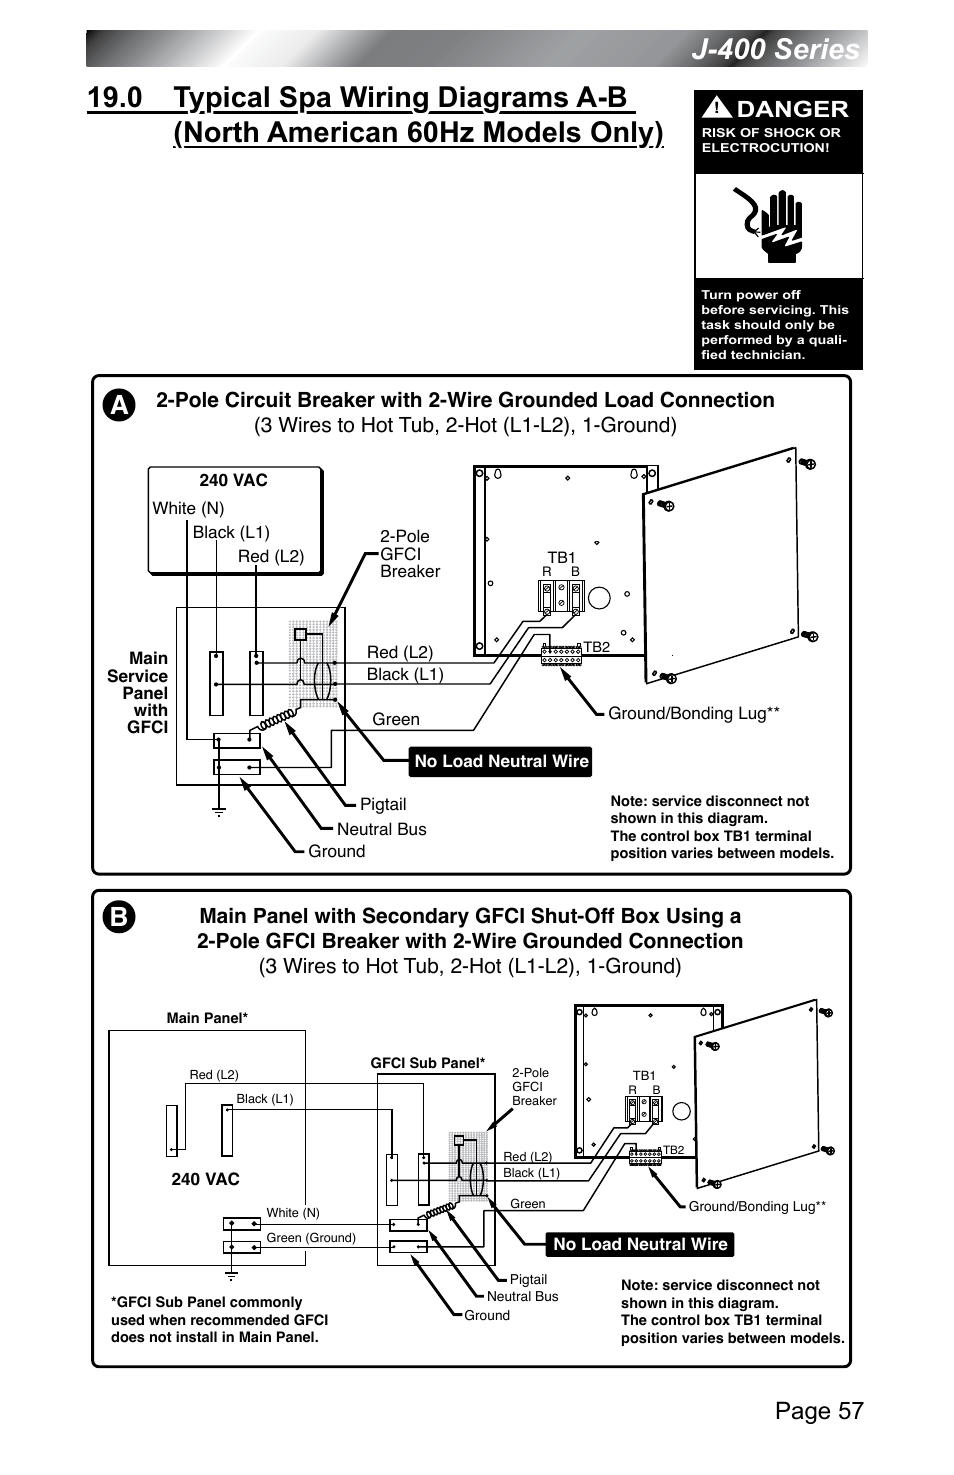 jacuzzi wiring diagram latching contactor models only), j-400 series, page 57 | j - 400 series 460 user manual 62 / 77